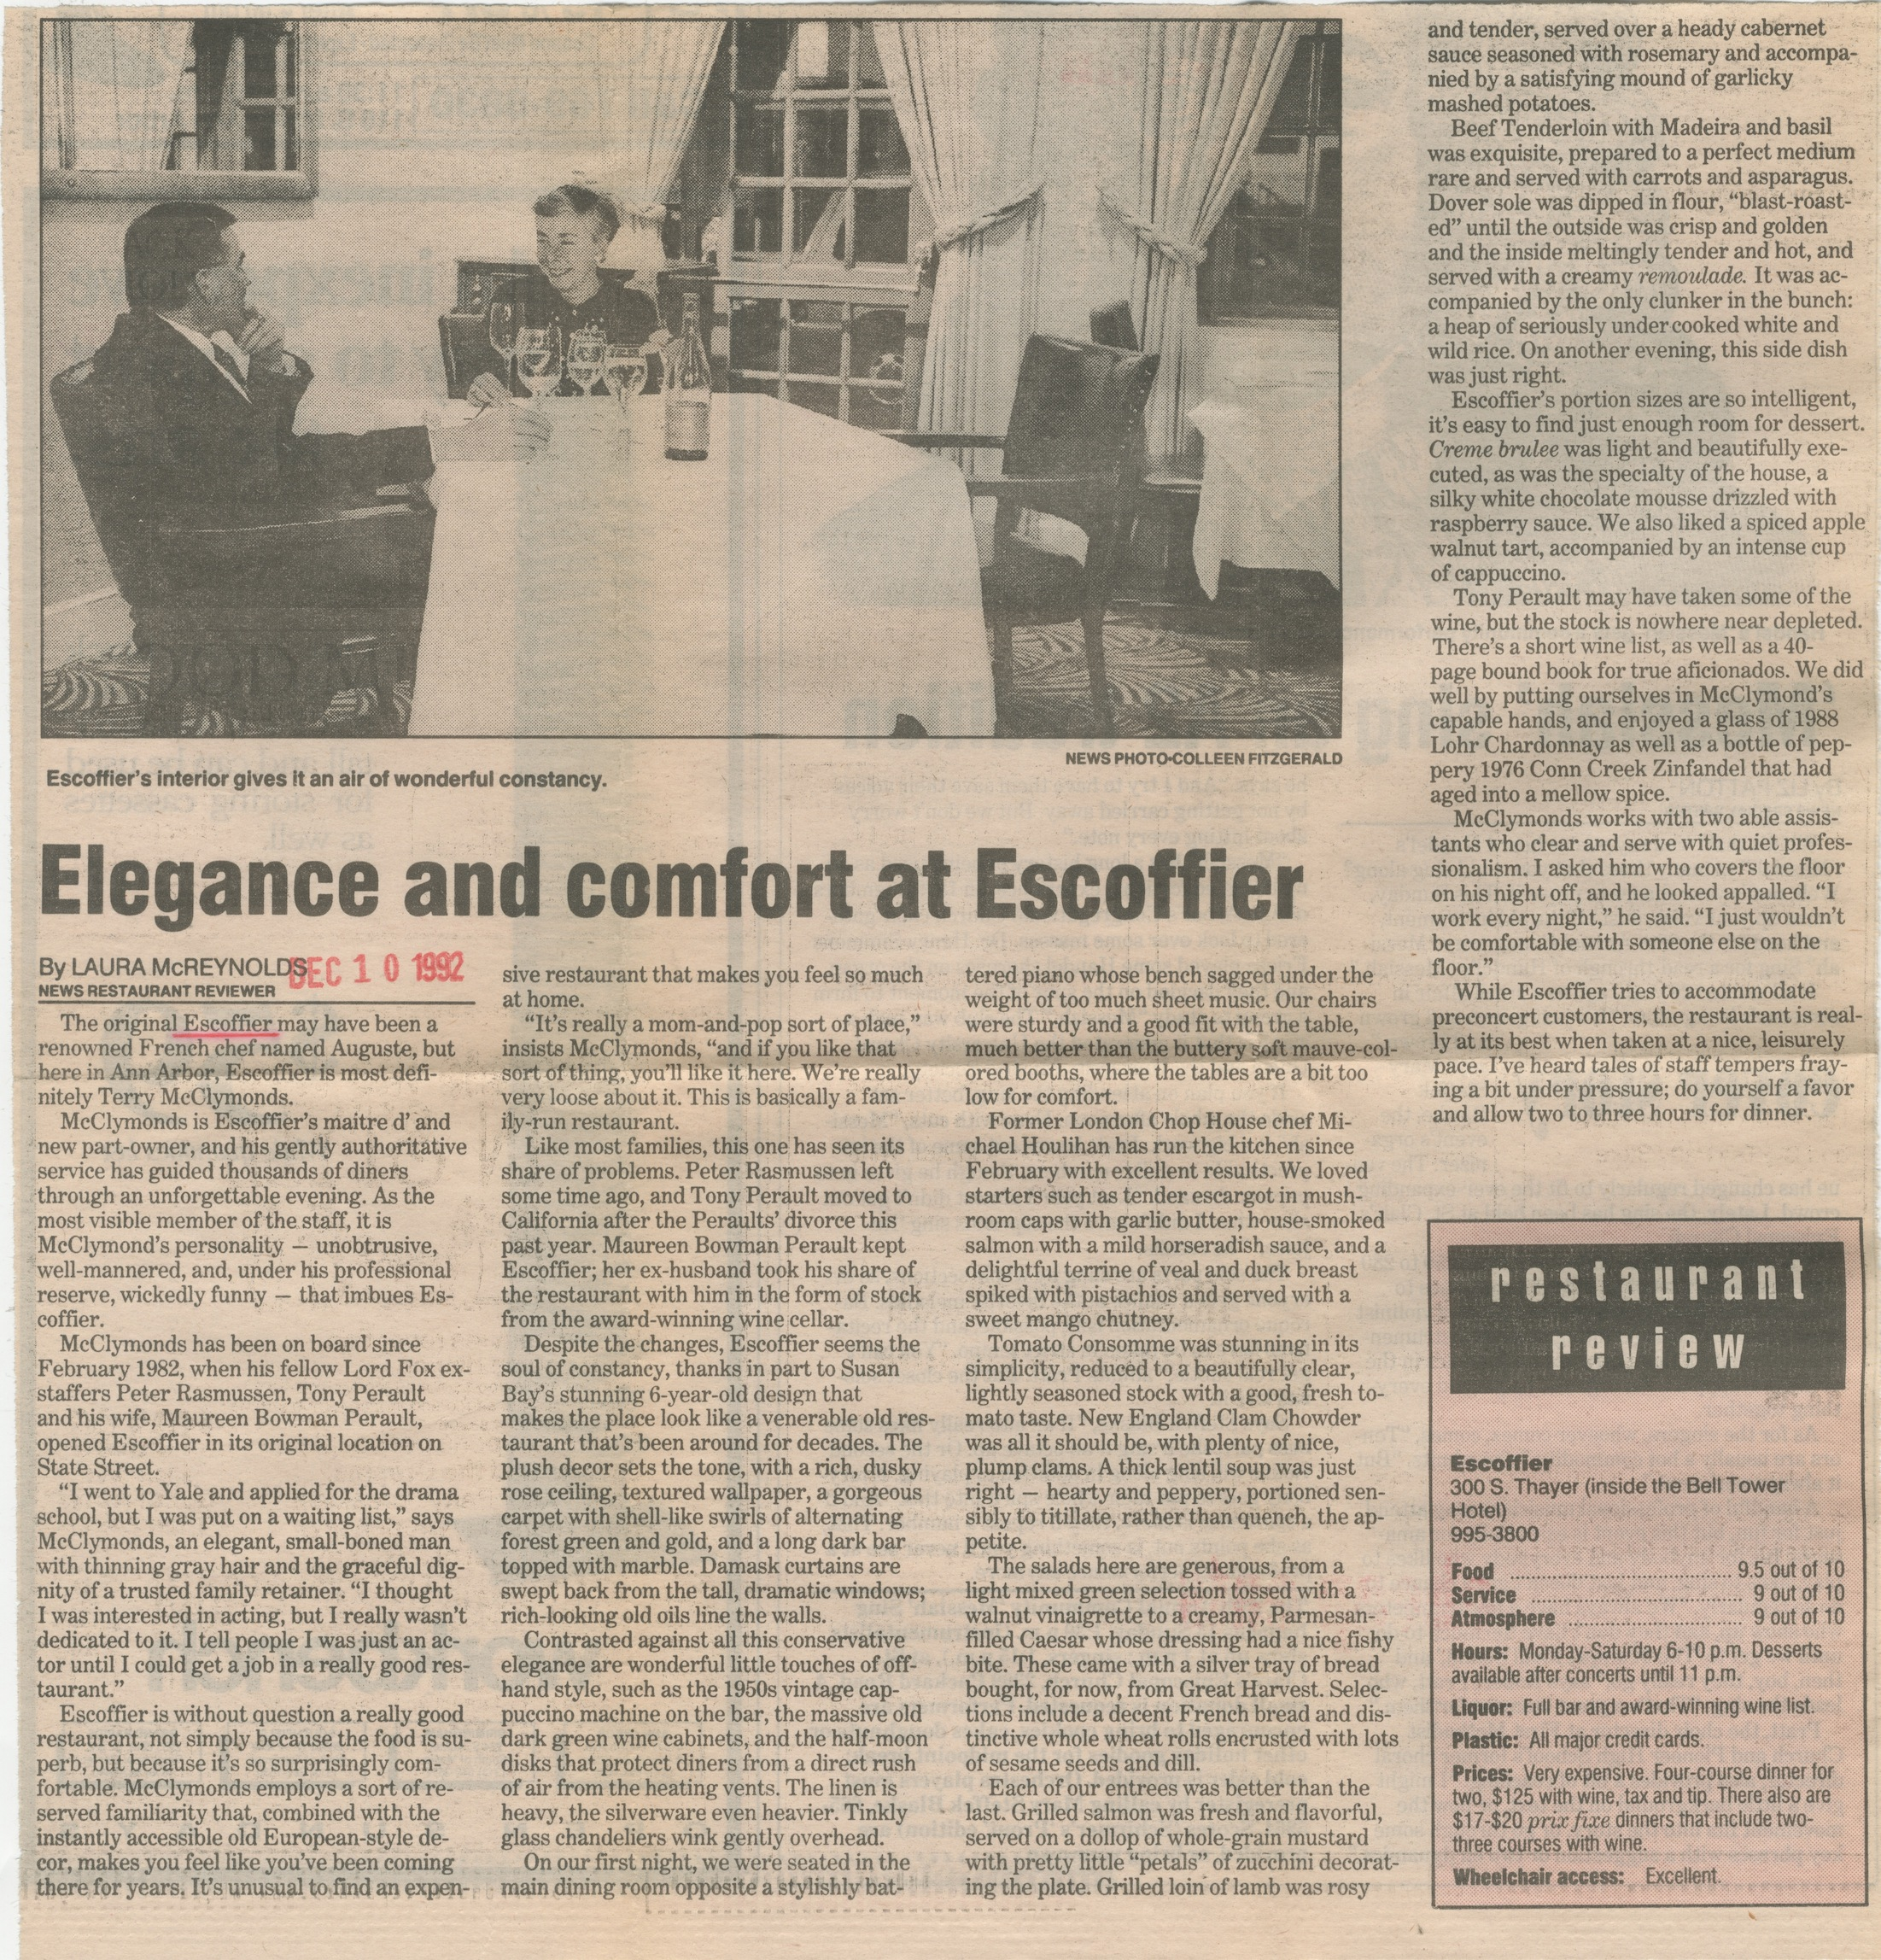 Elegance And Comfort At Escoffier image